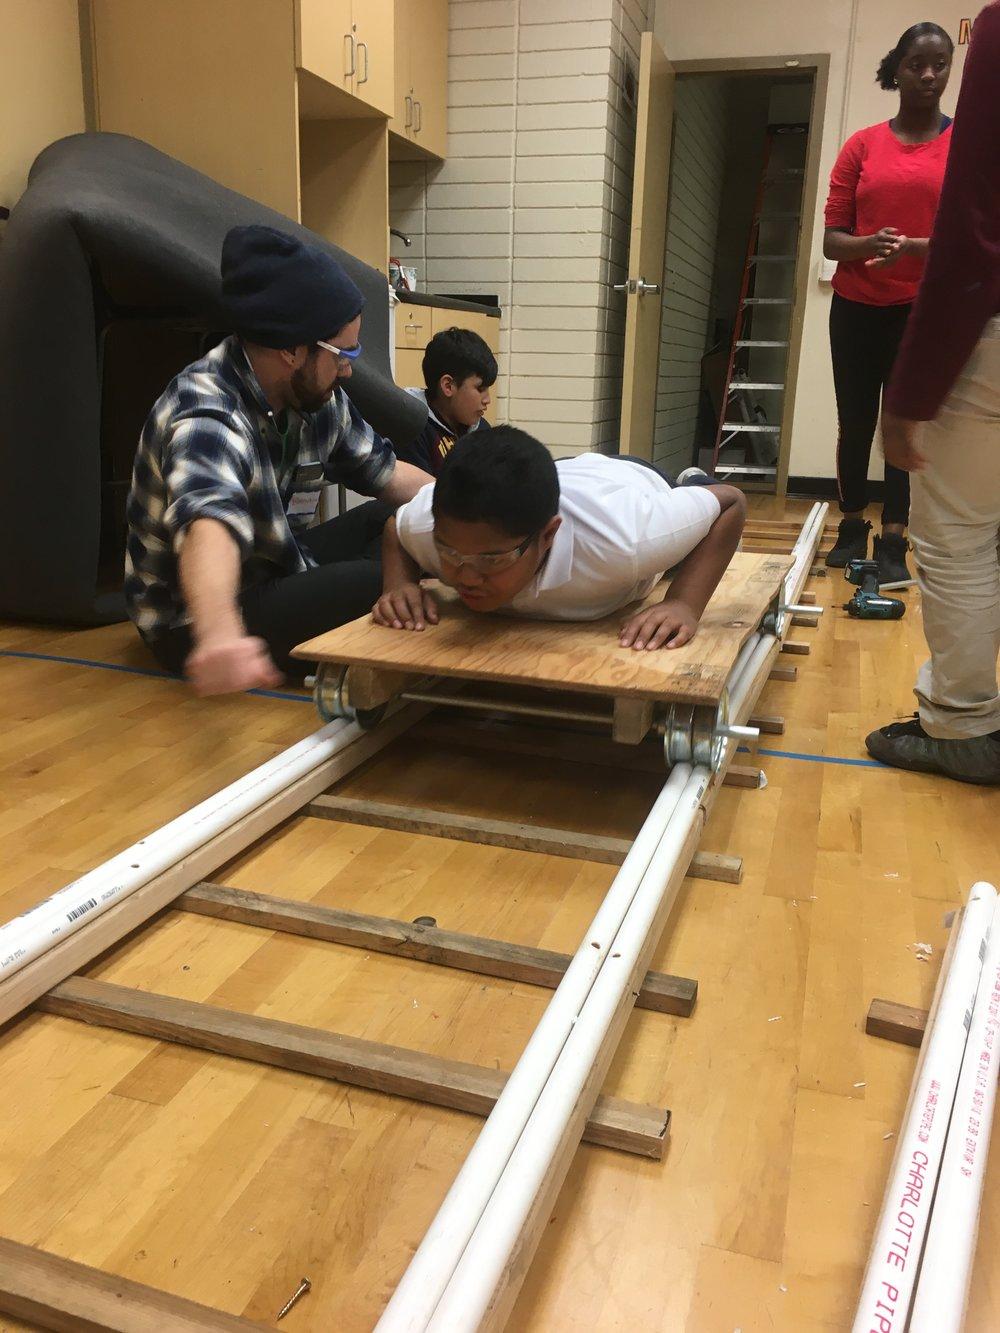 Several members of the group work together to build the bottom of the train car and test it on the tracks… you can tell by Weismann's smile that it works!!